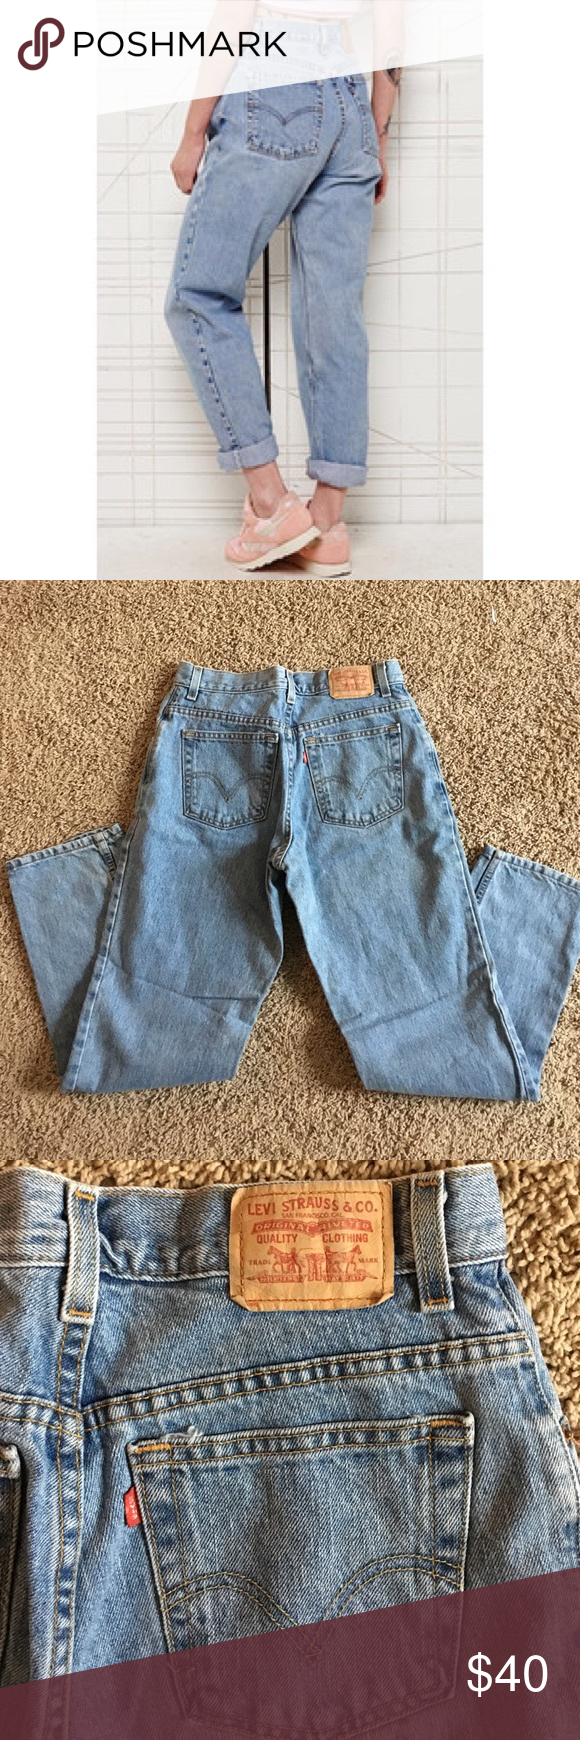 Vintage Levi's 550 Classic Levi's 550 high waisted mom jeans in excellent conditions medium to lighter wash. Waist is 29/30 inches and inseam is 31 inches but can always but cut or rolled to adjust ❤️ Levi's Jeans